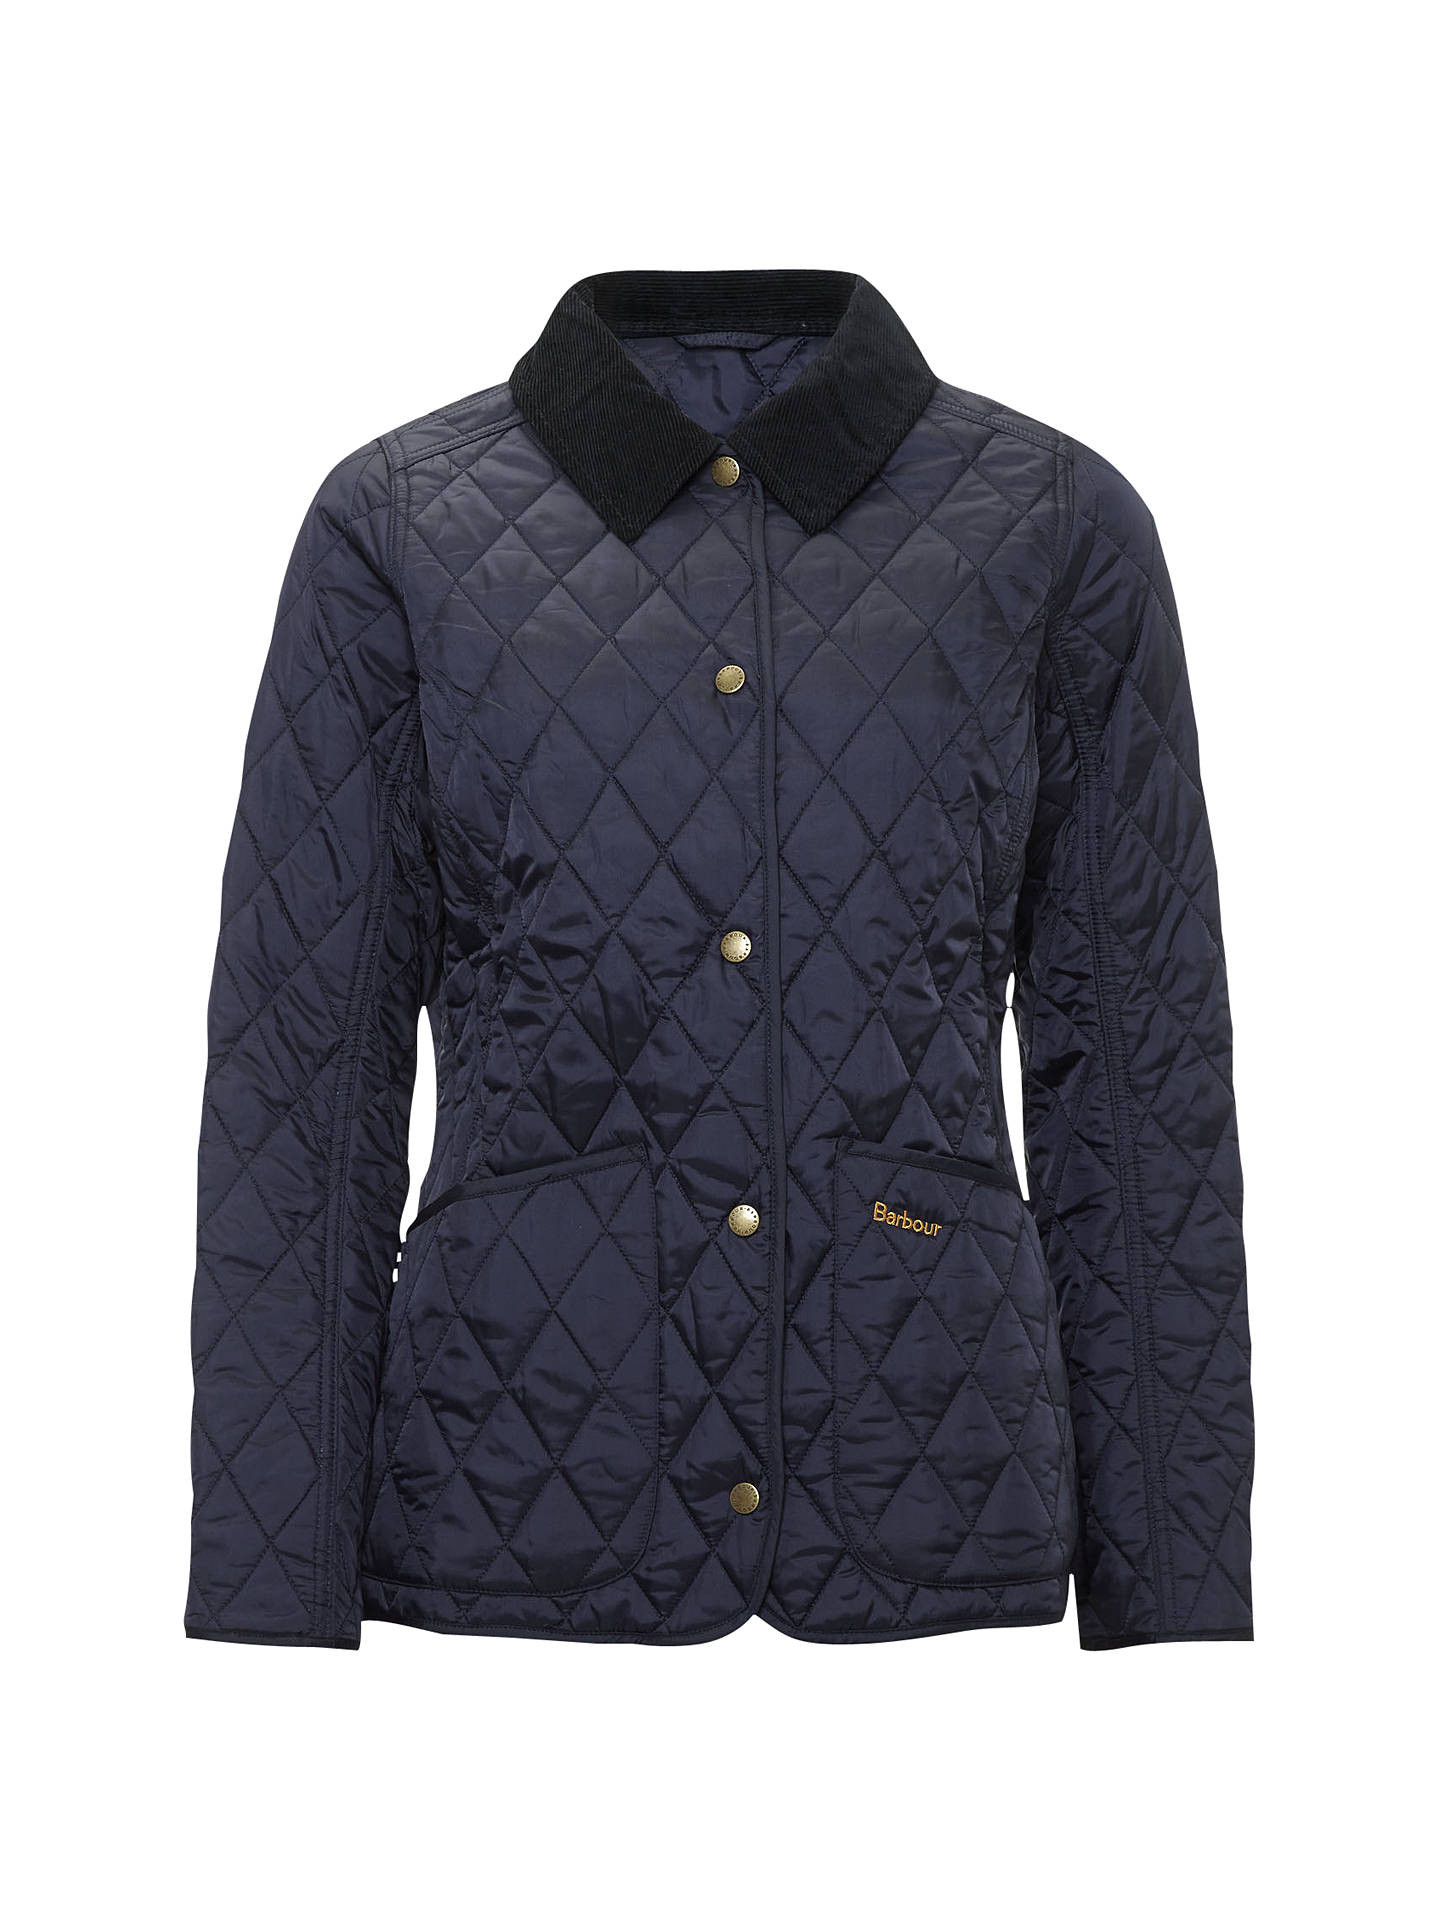 615e4b2b1 Barbour Spring Annandale Quilted Jacket, Navy at John Lewis & Partners